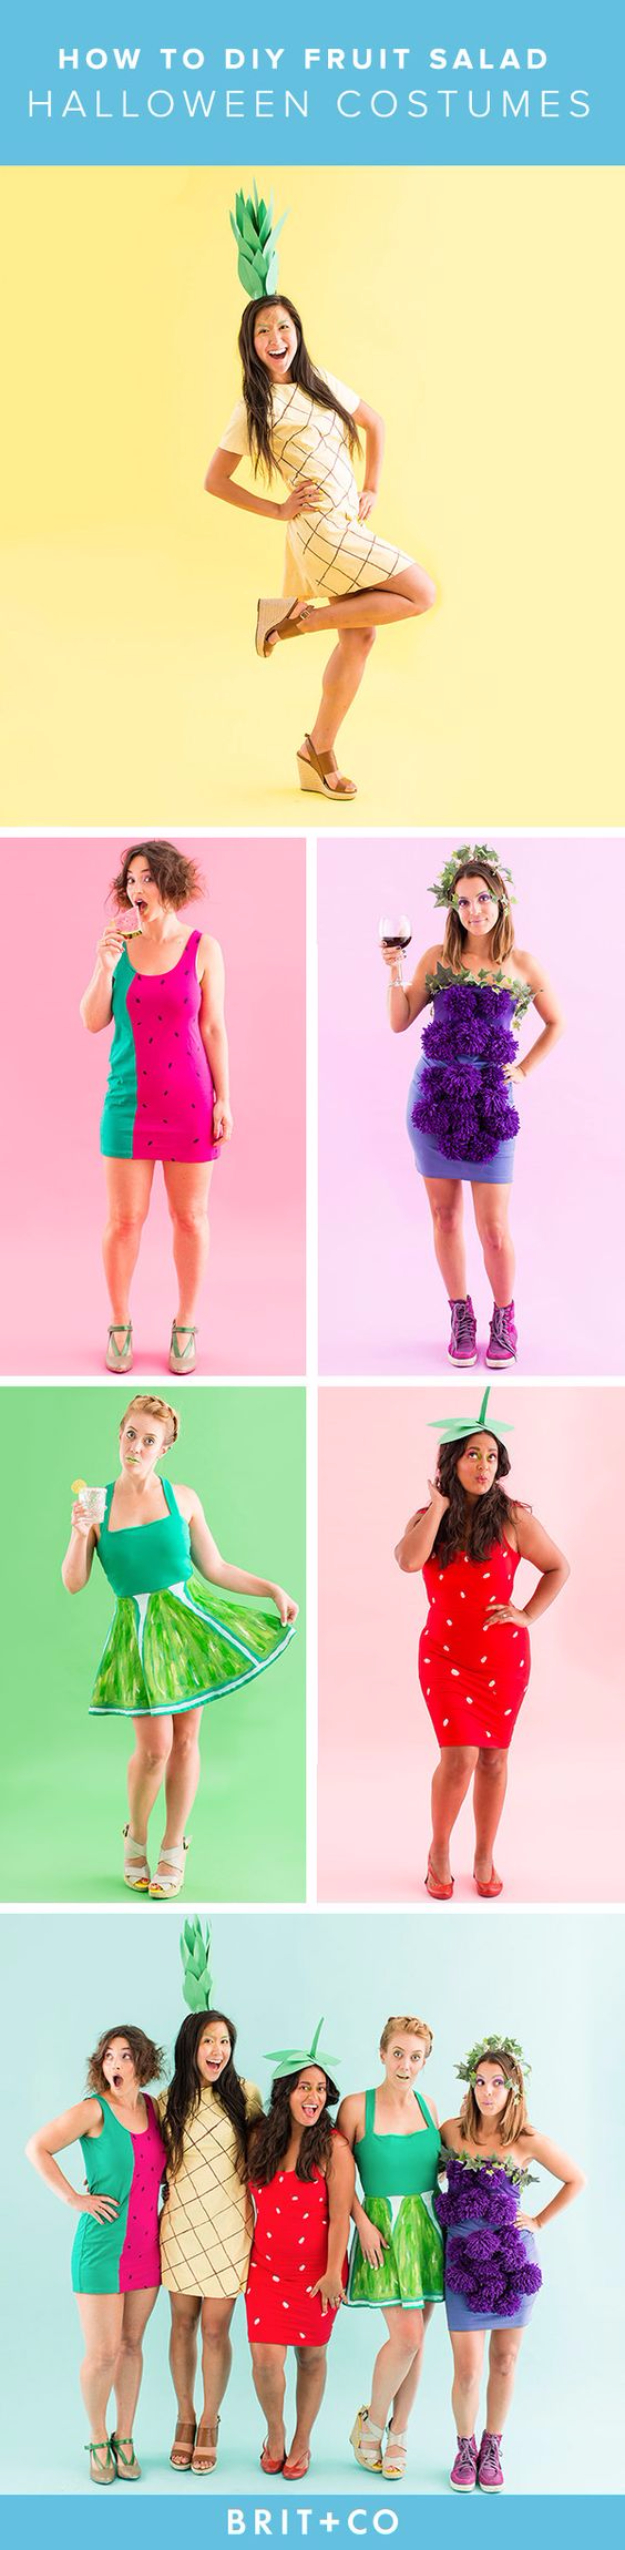 Best DIY Halloween Costume Ideas - Fruit Salad Group Halloween Costume for Groups - Do It Yourself Costumes for Women, Men, Teens, Adults and Couples. Fun, Easy, Clever, Cheap and Creative Costumes That Will Win The Contest http://diyjoy.com/best-diy-halloween-costumes